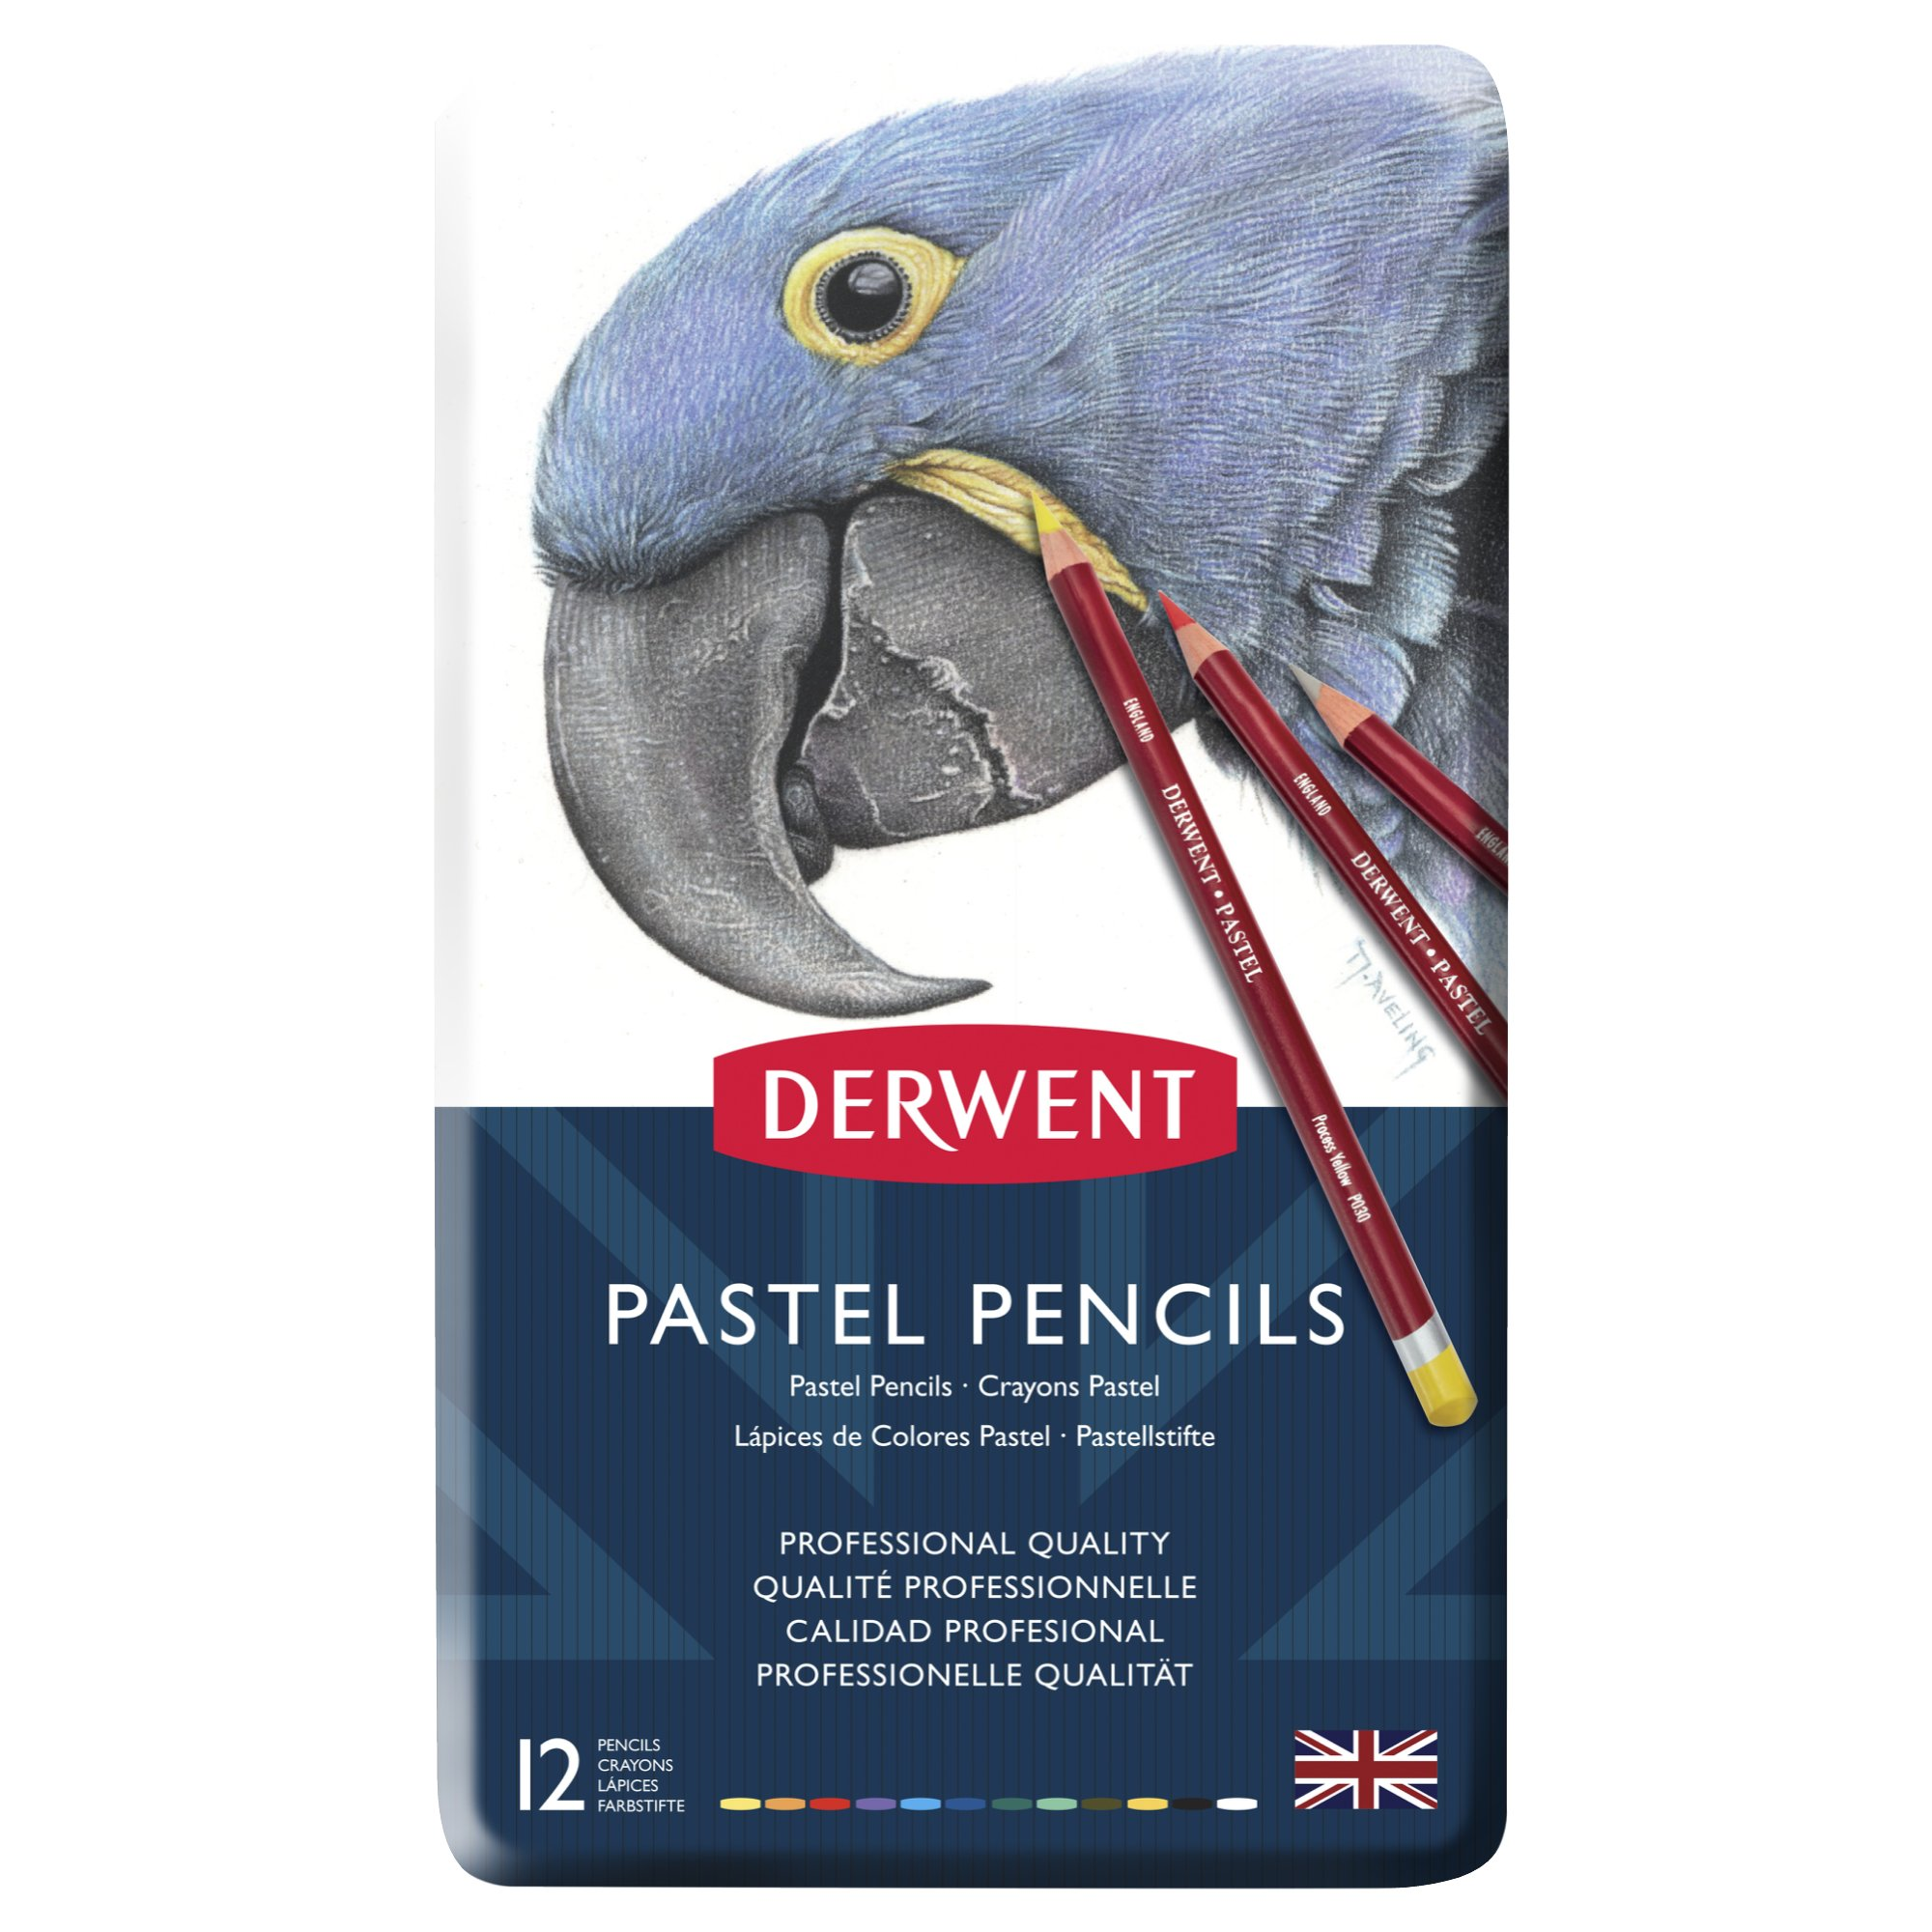 Derwent Pastel 12 Pencils Tin - Pens And Pencils